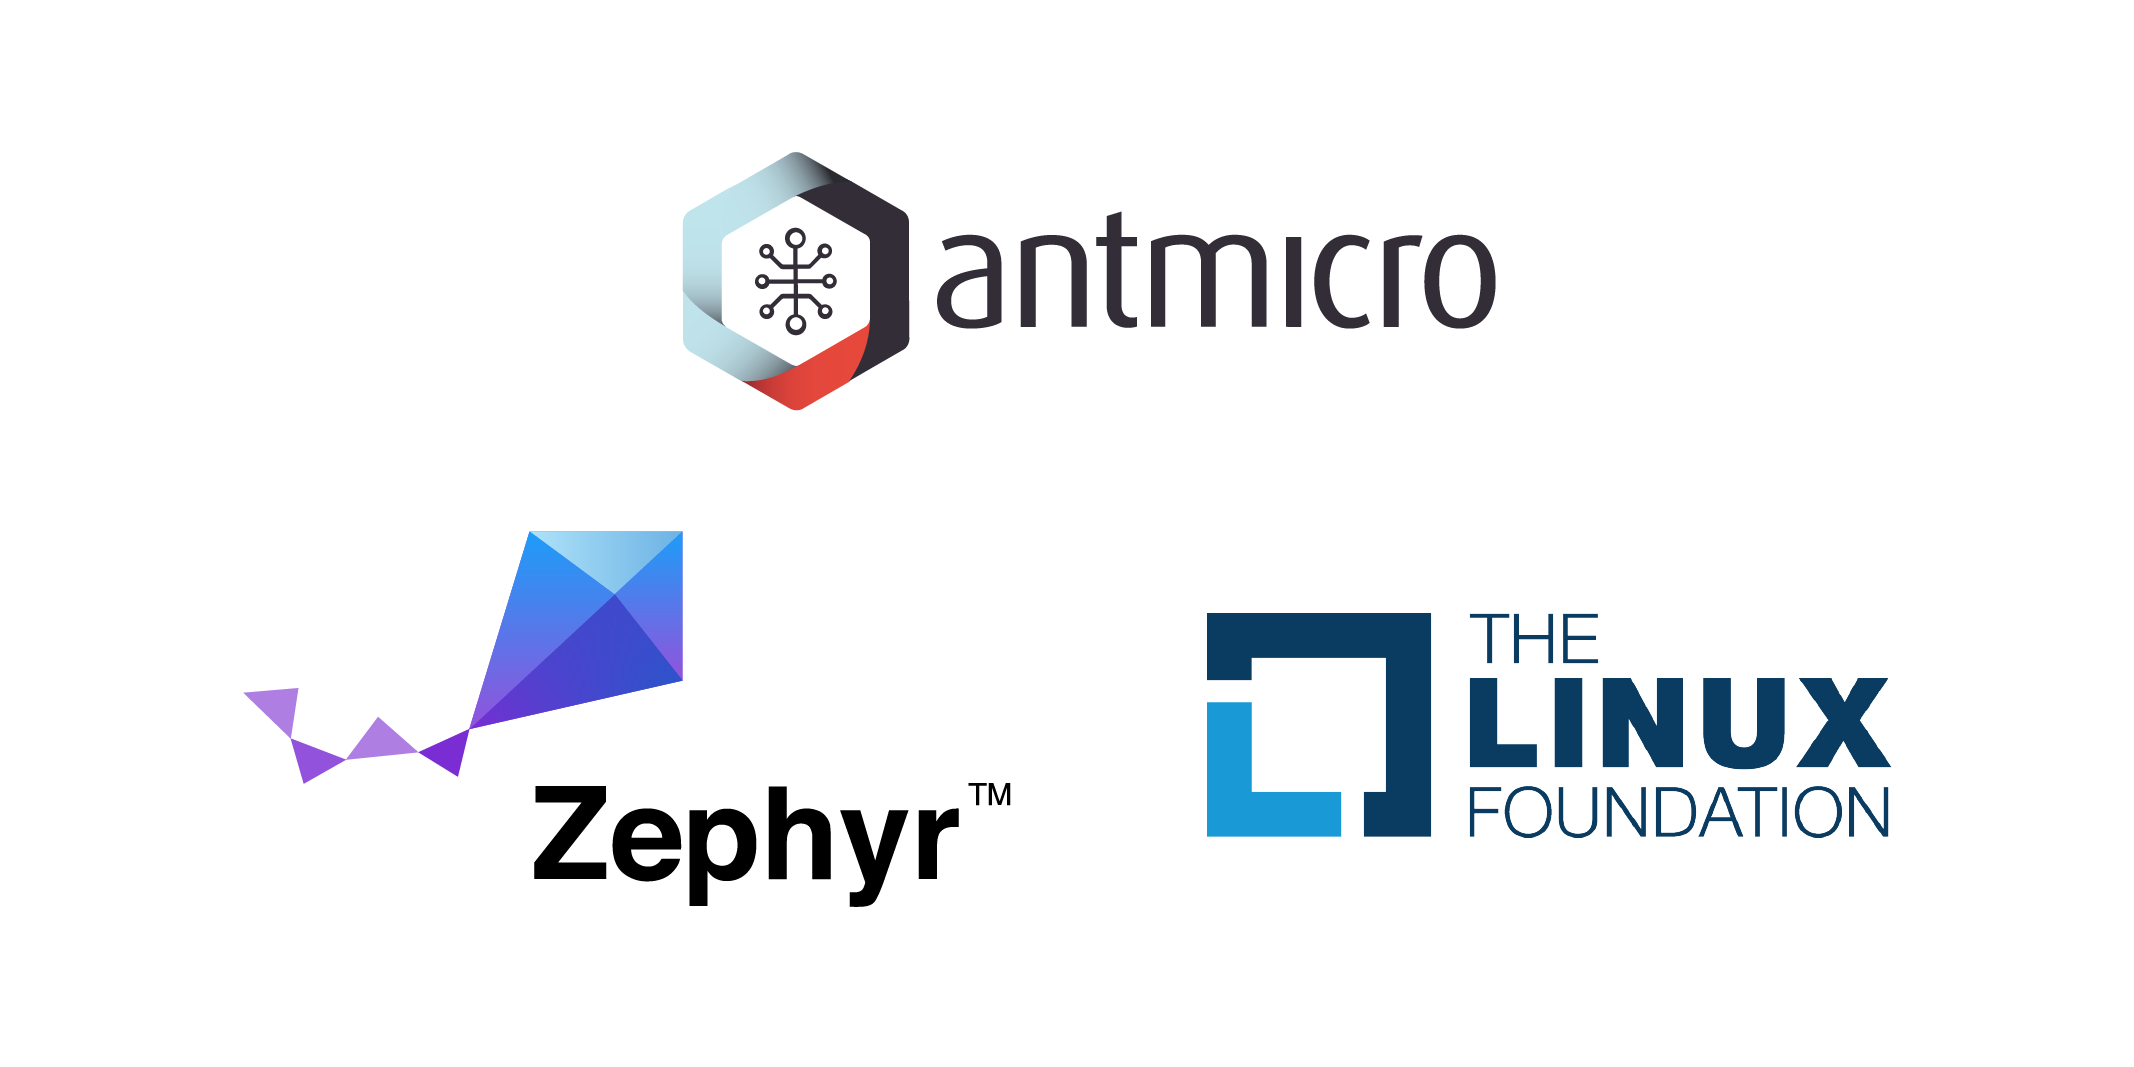 Antmicro joins LF and Zephyr Project